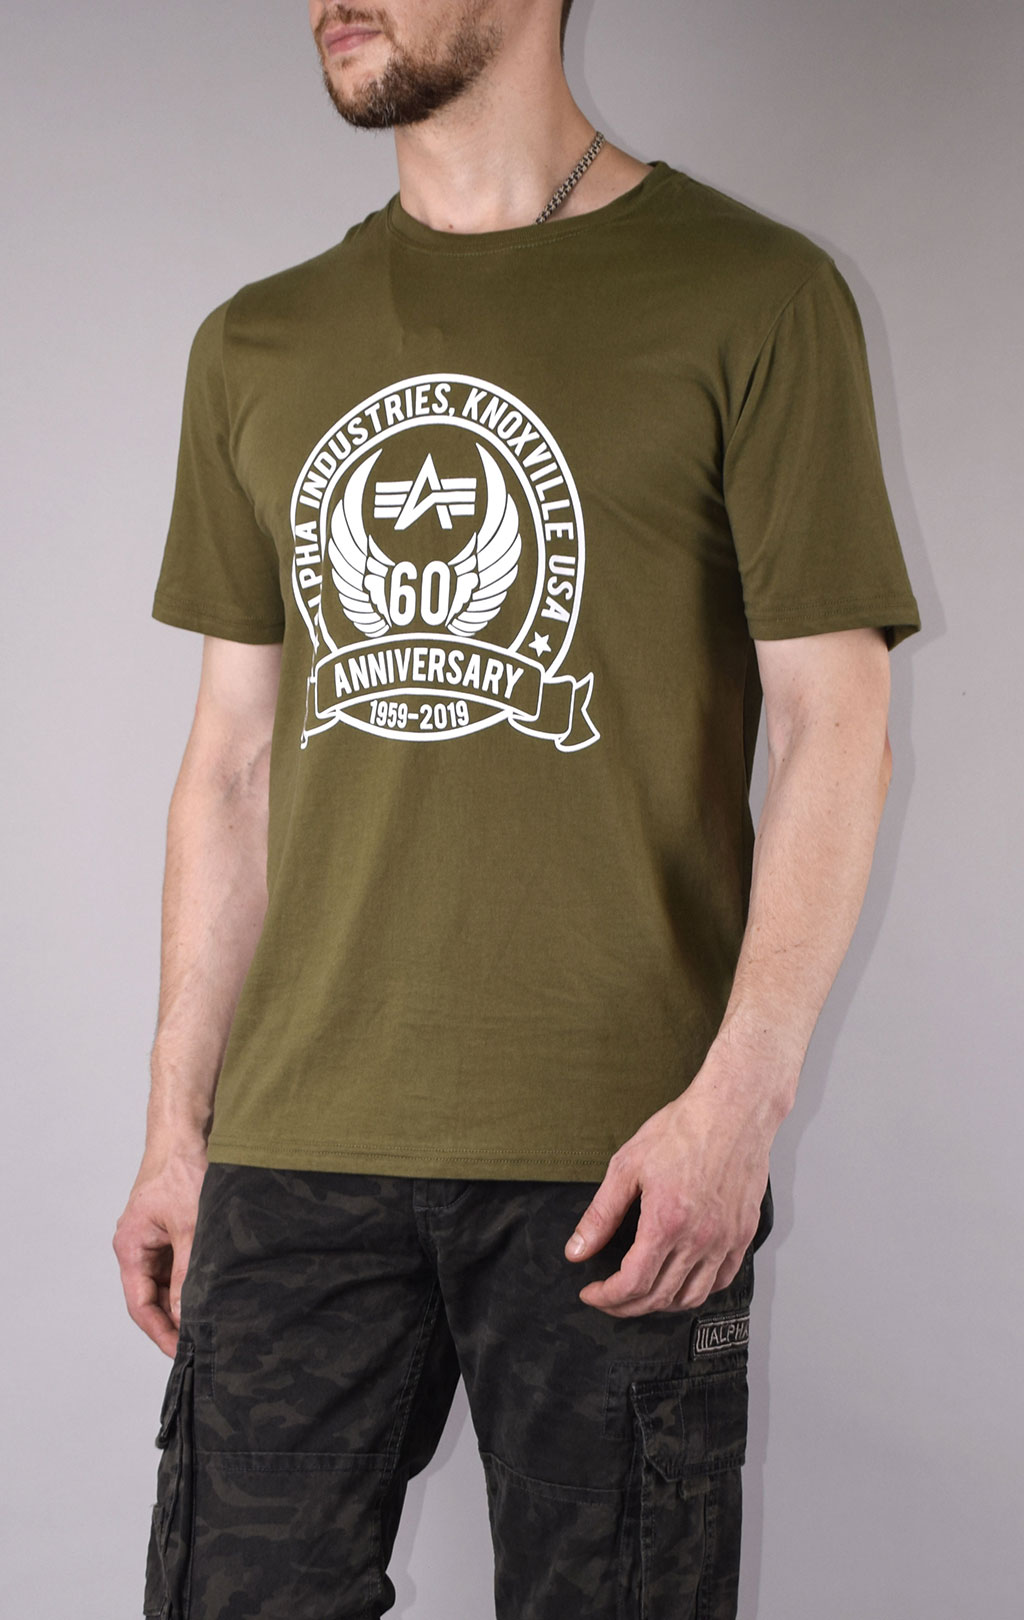 Футболка ALPHA INDUSTRIES 60TH ANNIVERSARY deep olive